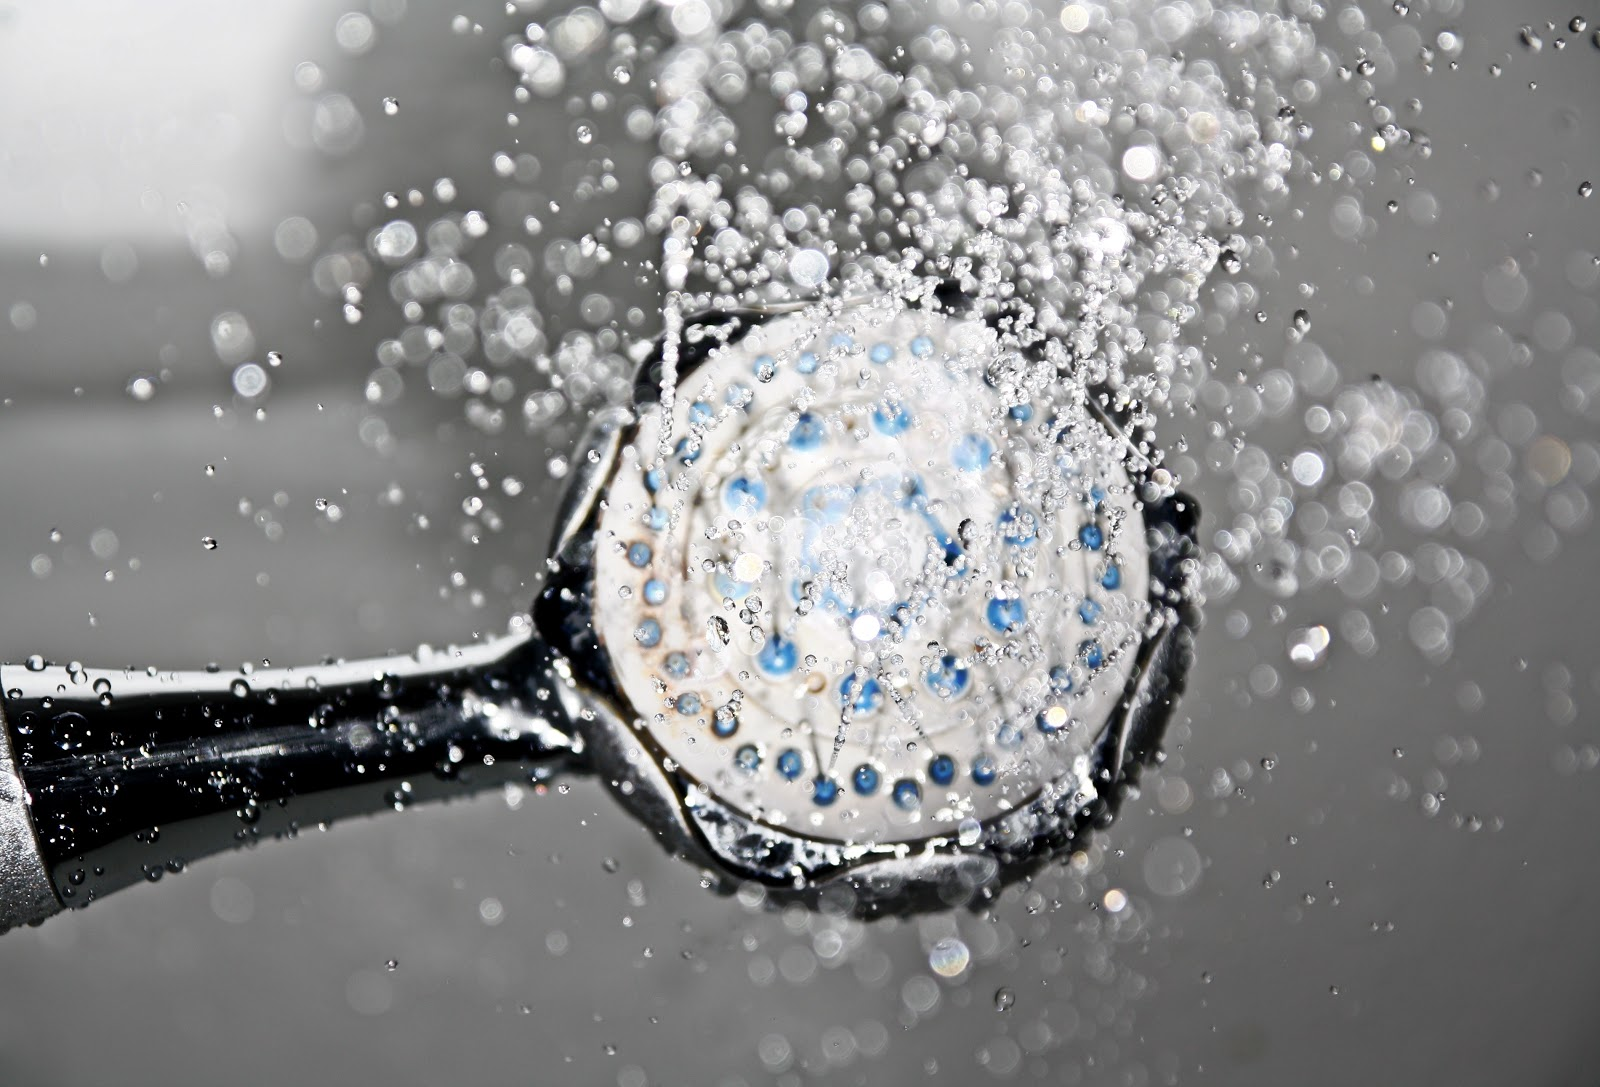 Showerhead common causes of clogged pipes